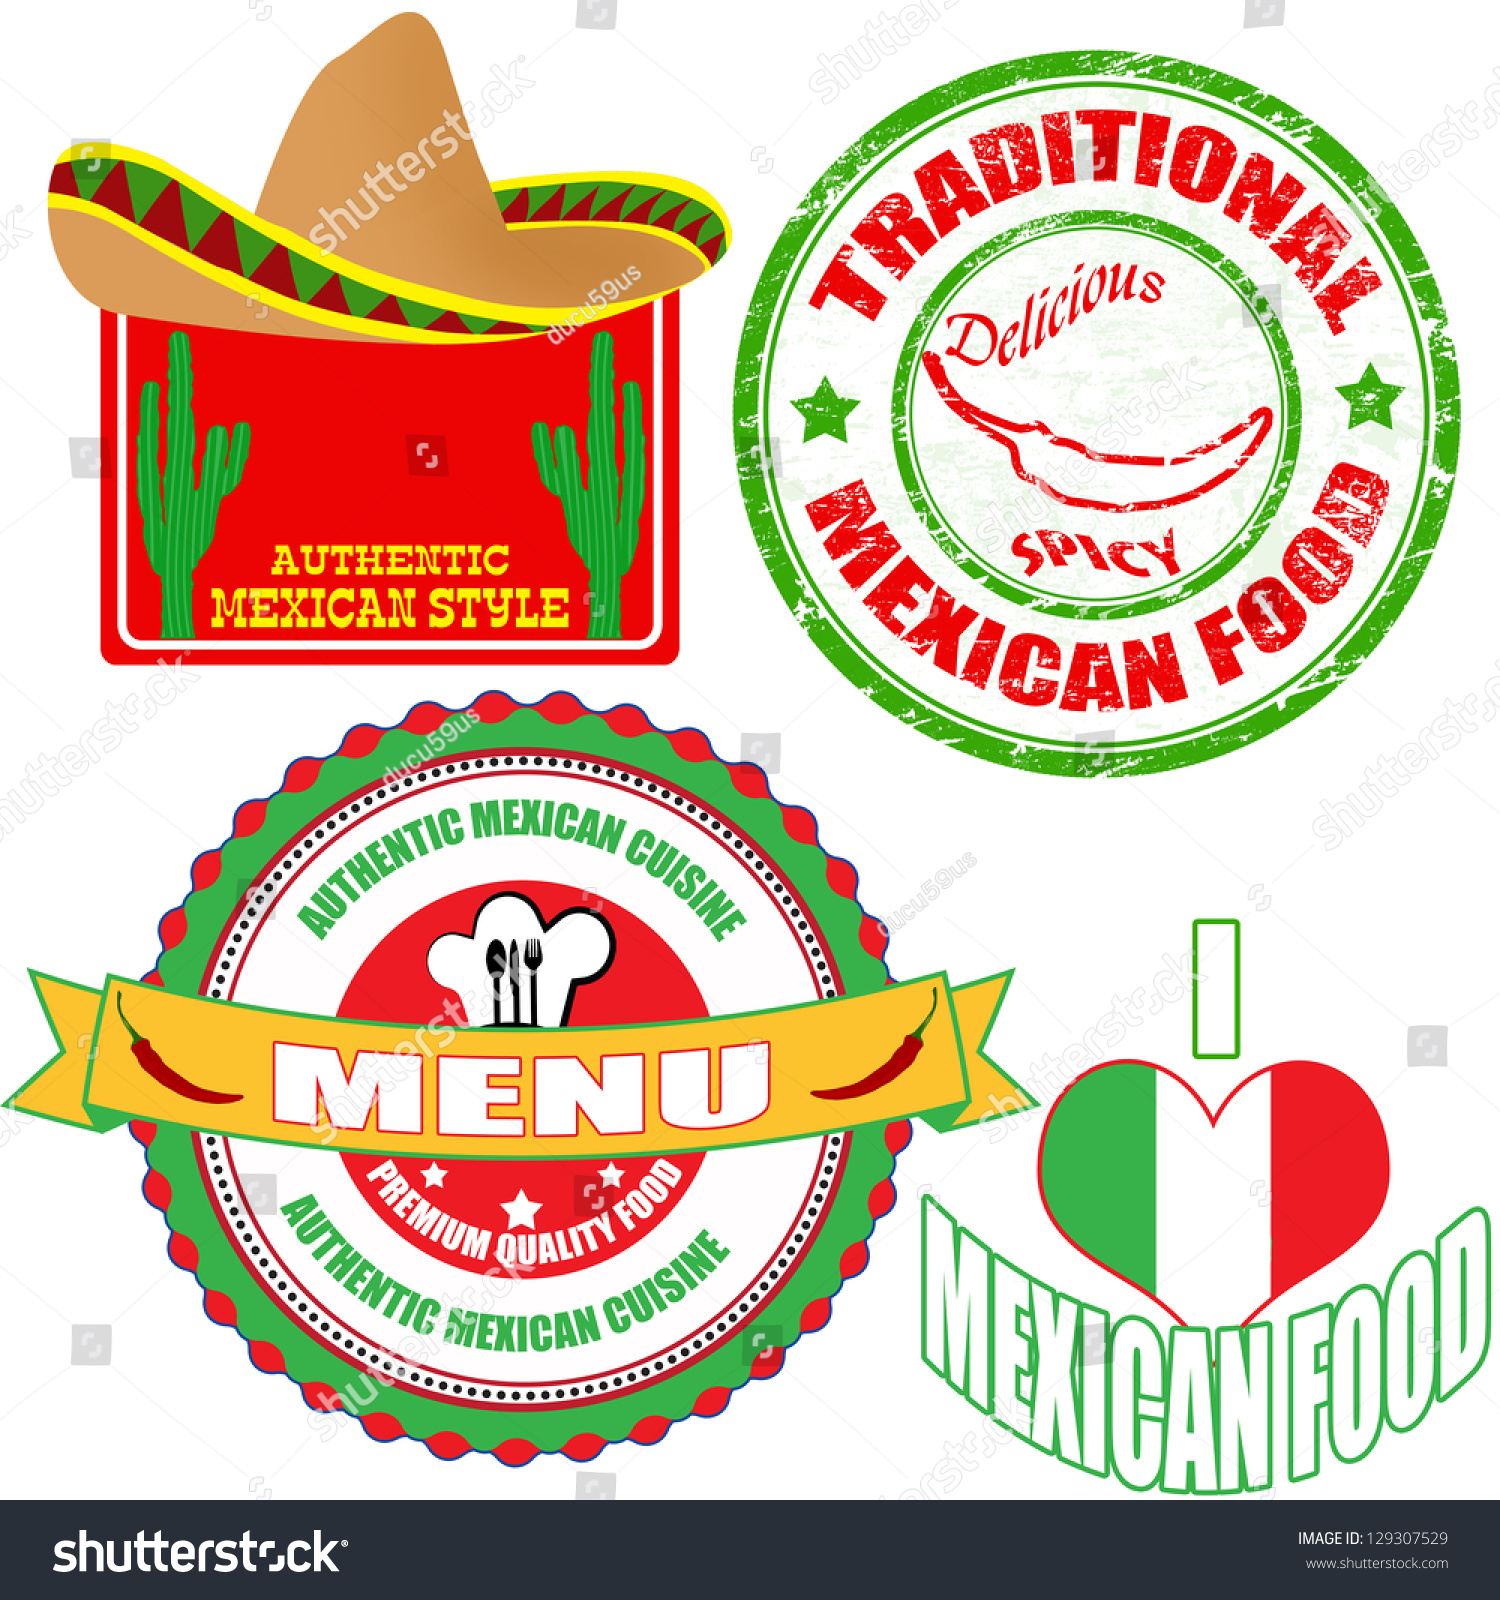 Italian Restaurant Logo With Flag: Set Authentic Mexican Food Stamp Labels Stock Vector